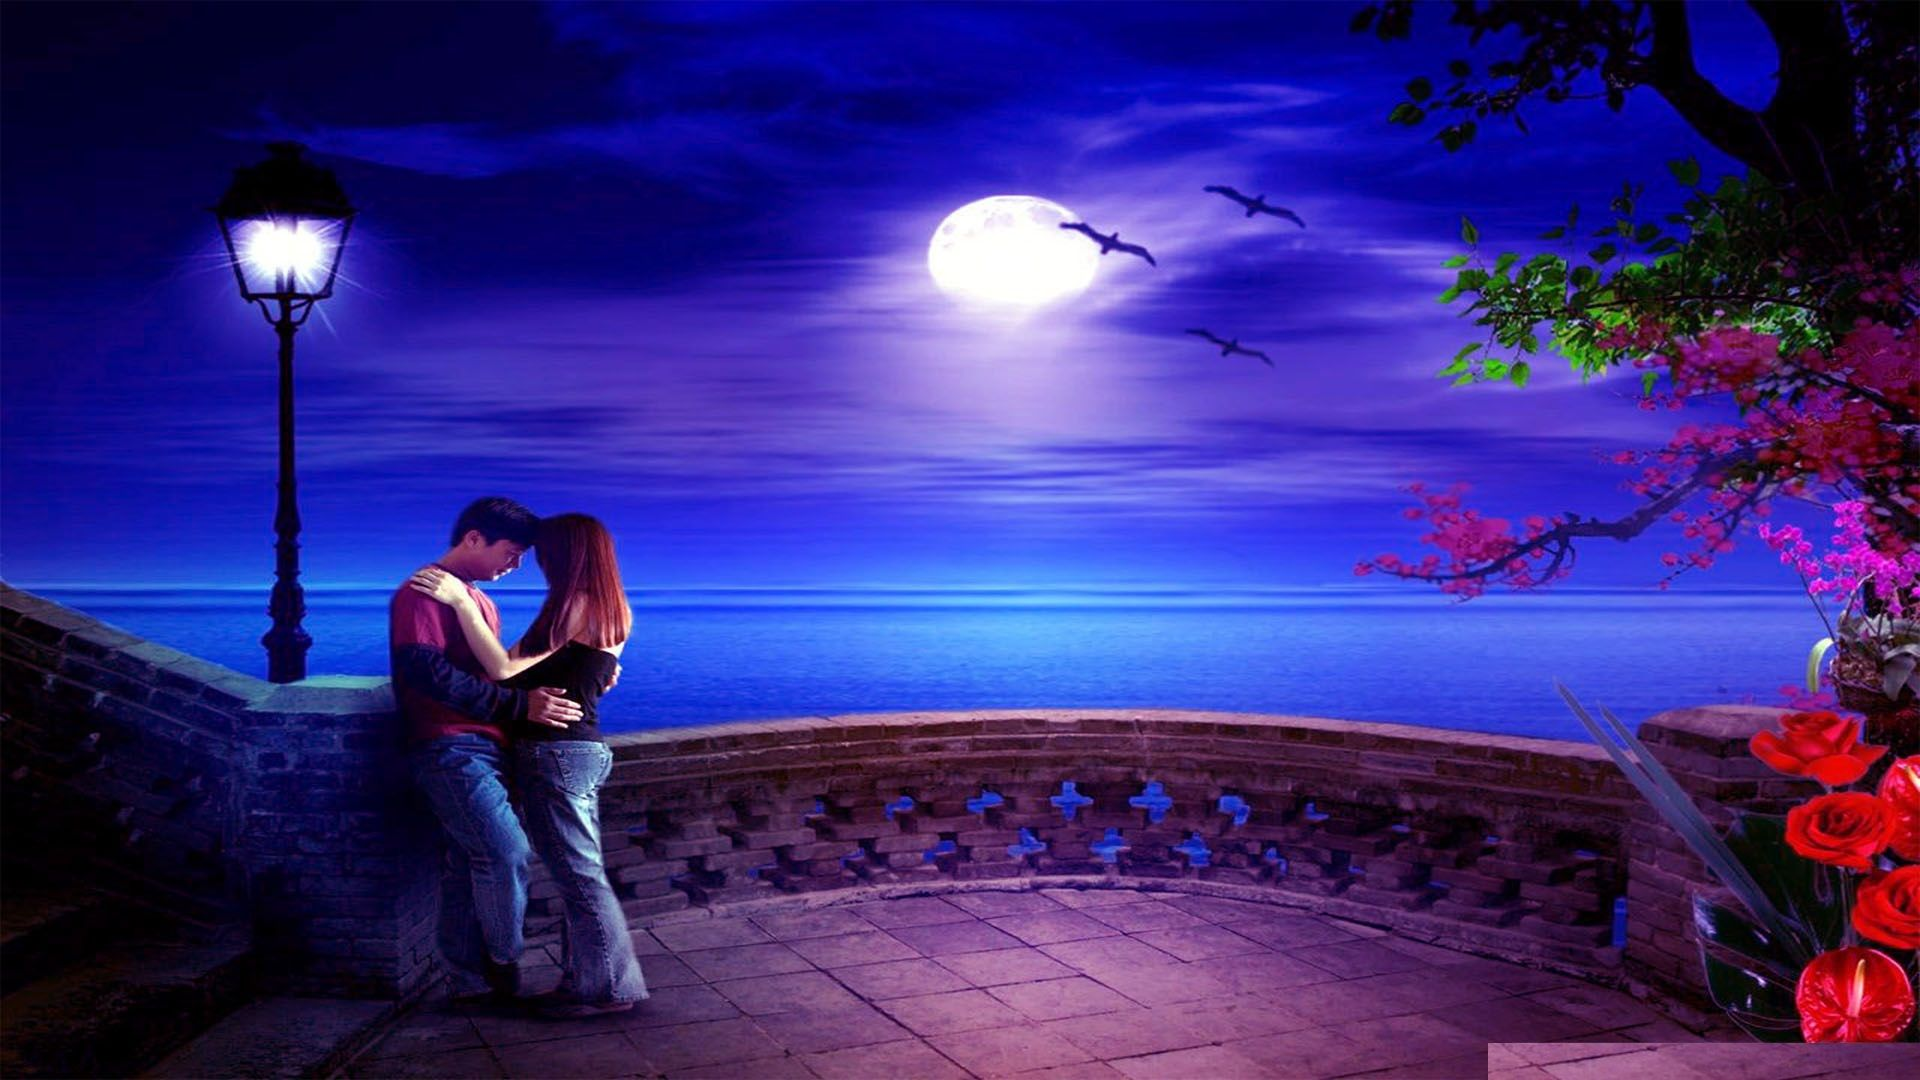 Love Hd Wallpaper Mobile Phone : Romantic Love HD Wallpapers : Find best latest Romantic Love HD Wallpapers for your Pc desktop ...